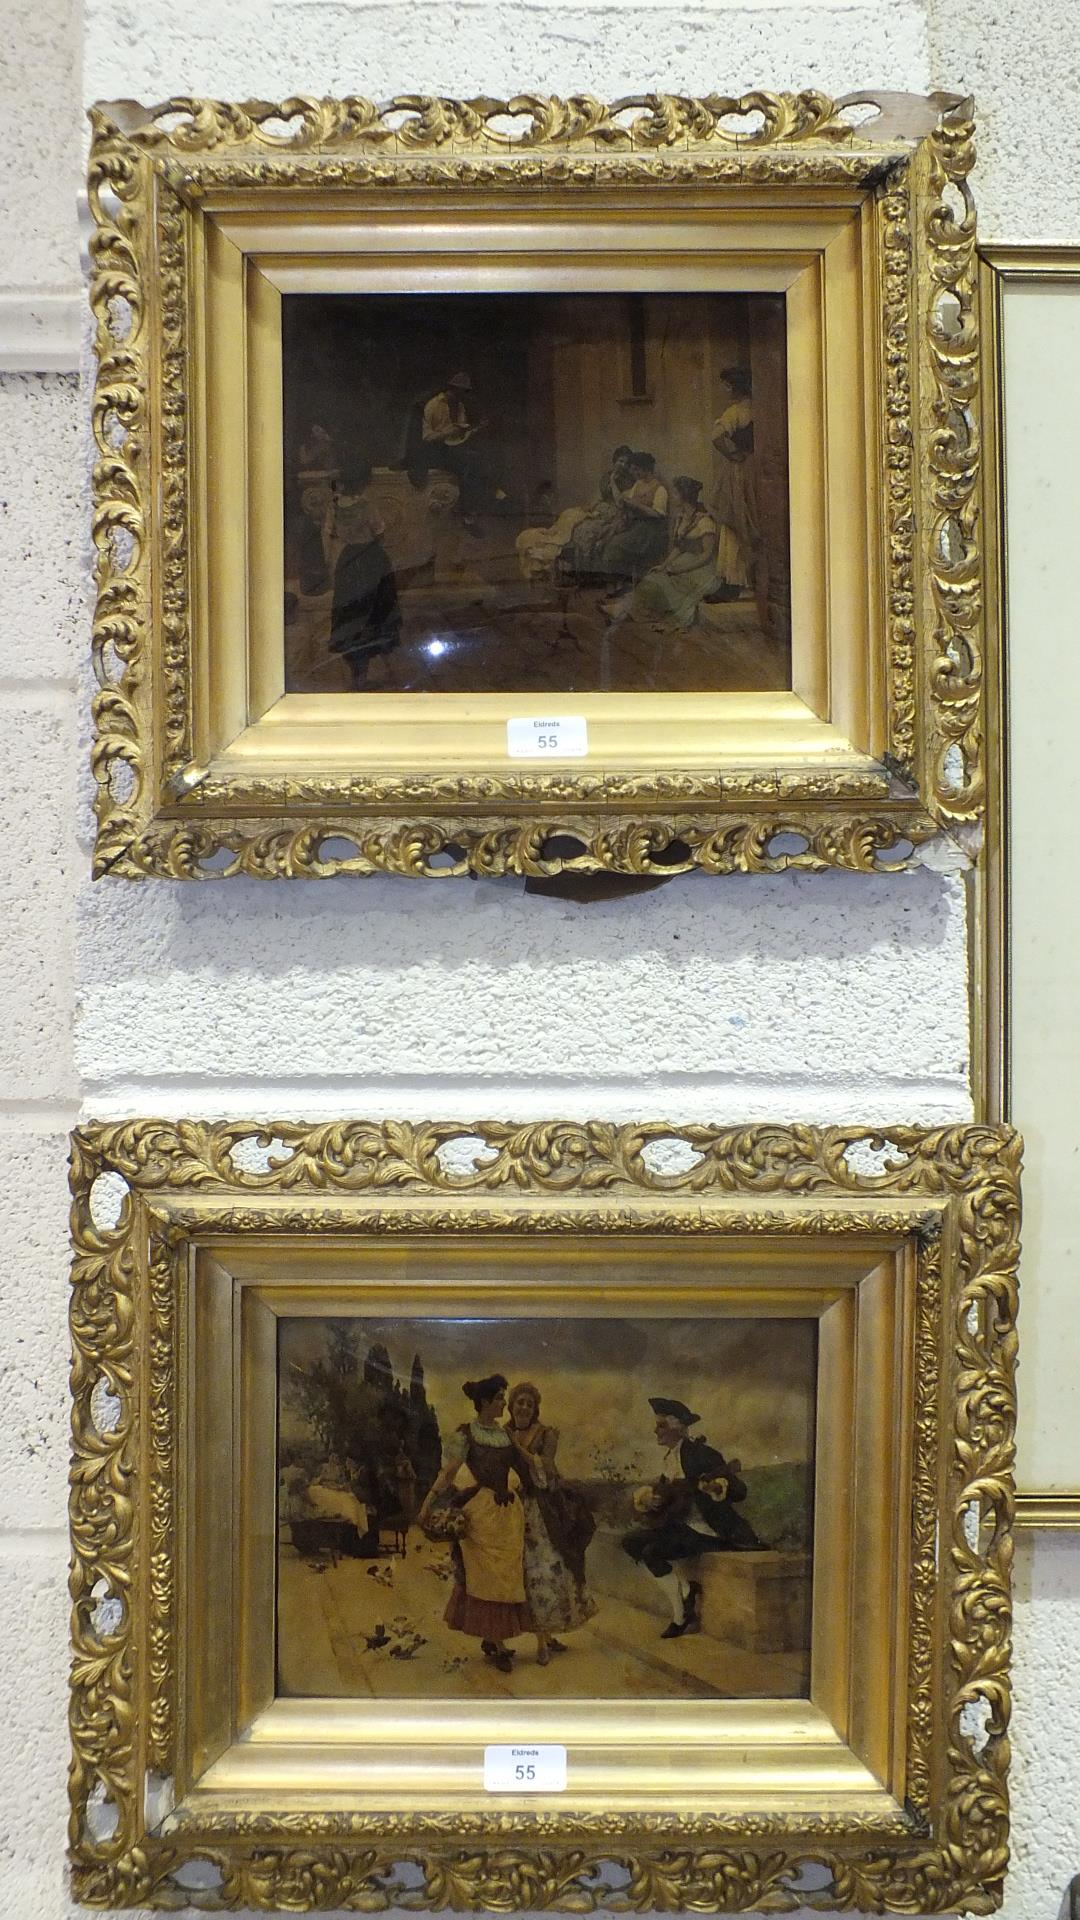 Lot 55 - Two framed crystoleum prints, 20 x 28cm.